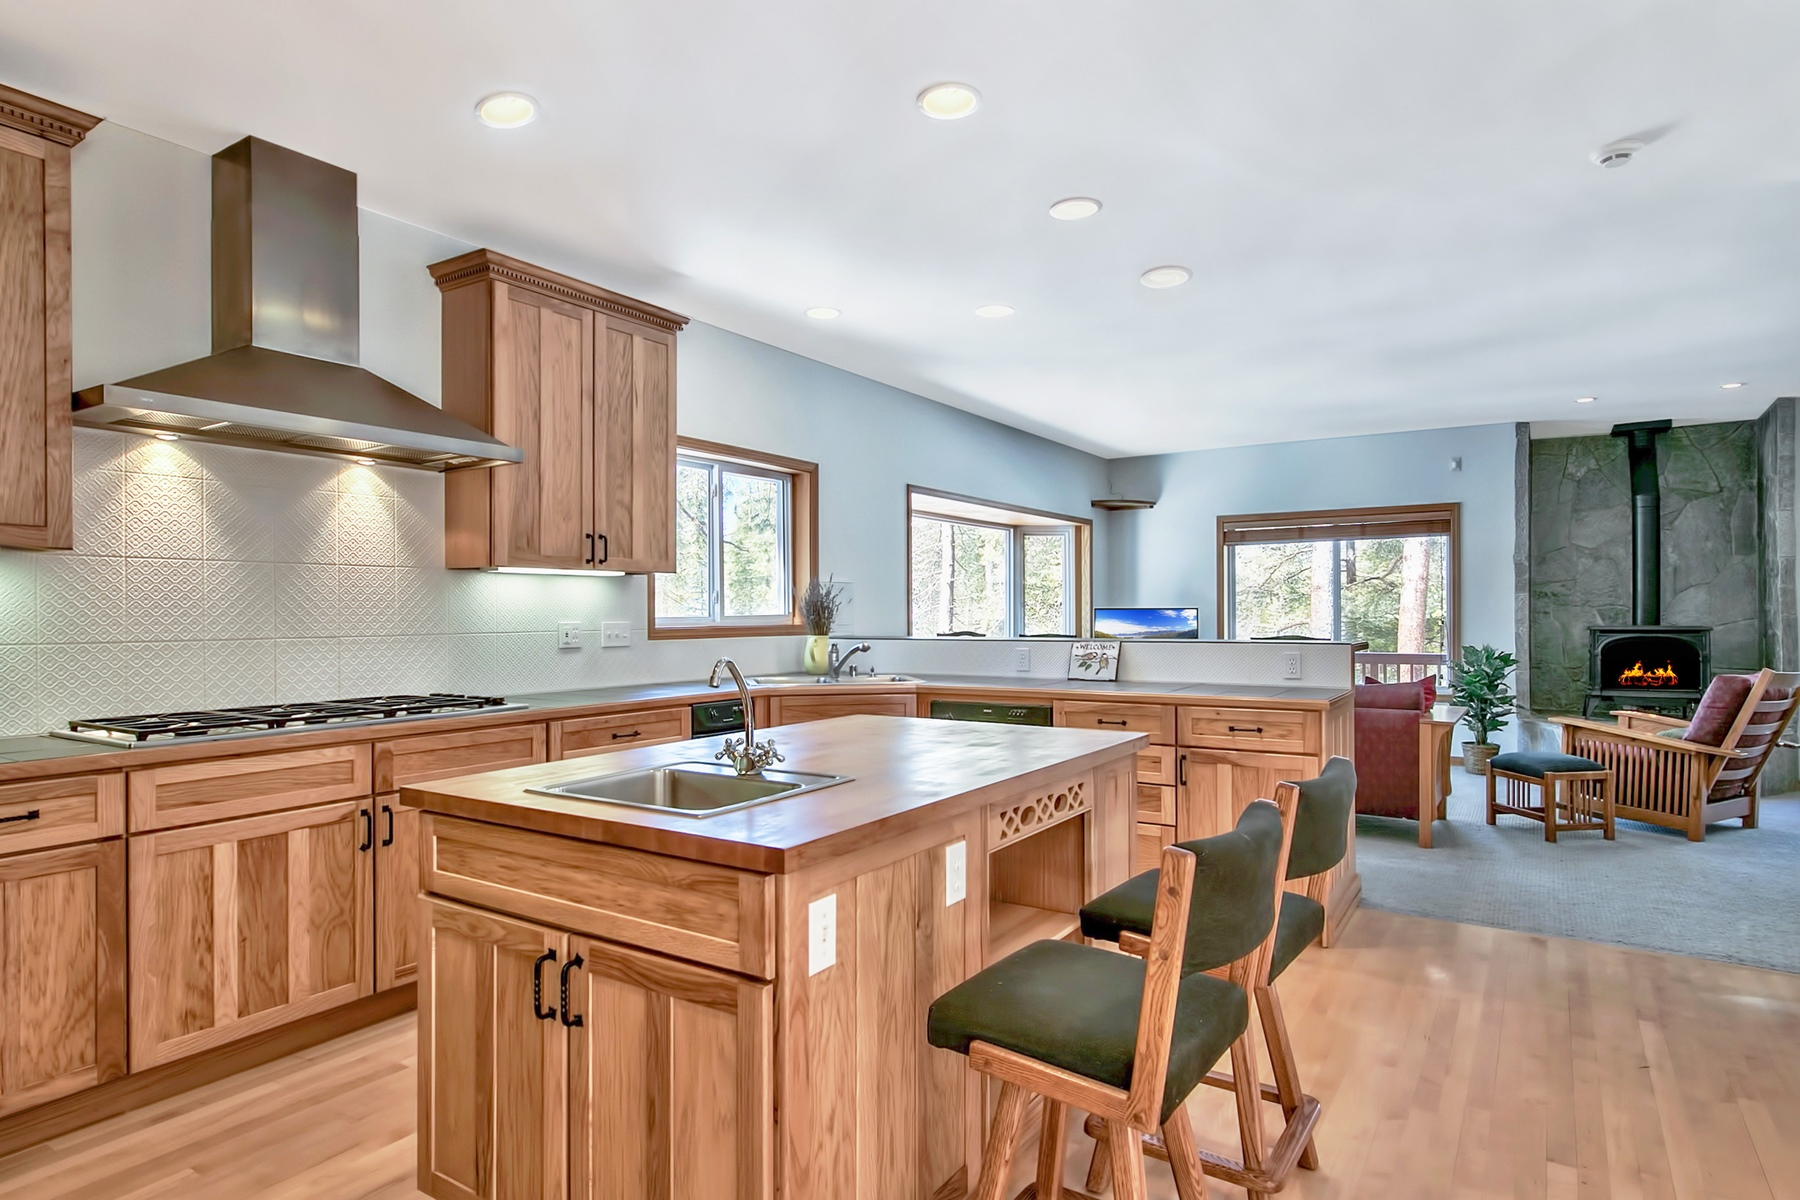 Additional photo for property listing at 8415 Hillside Drive, Soda Springs, California 95728 8415 Hillside Drive Soda Springs, California 95728 Estados Unidos